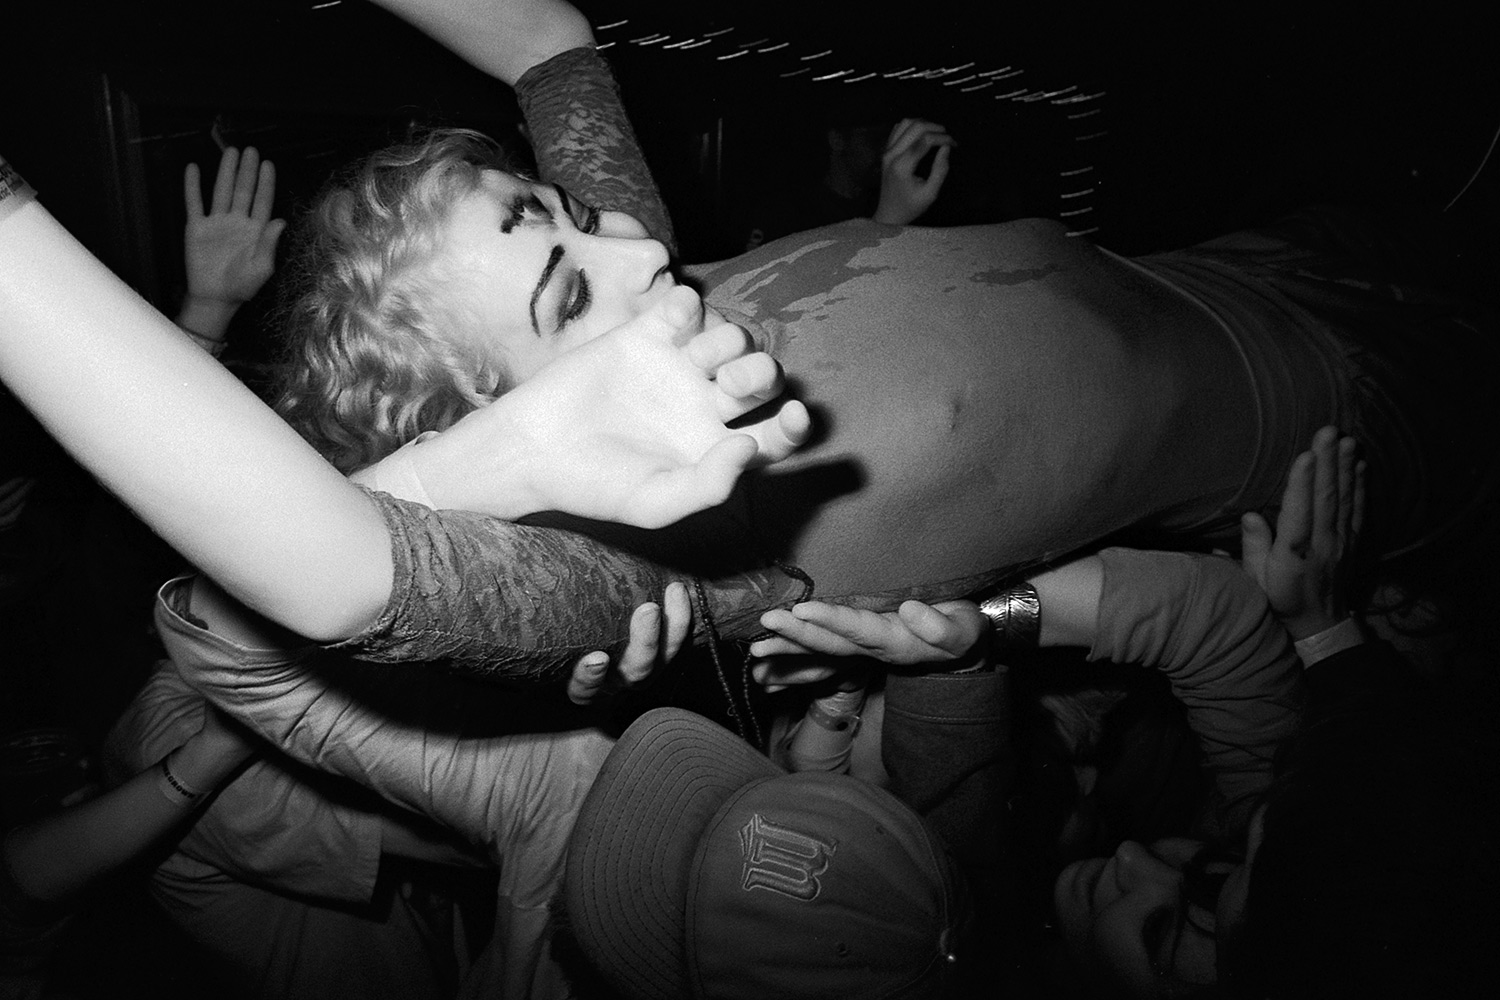 Crowd Surfing, May 2014